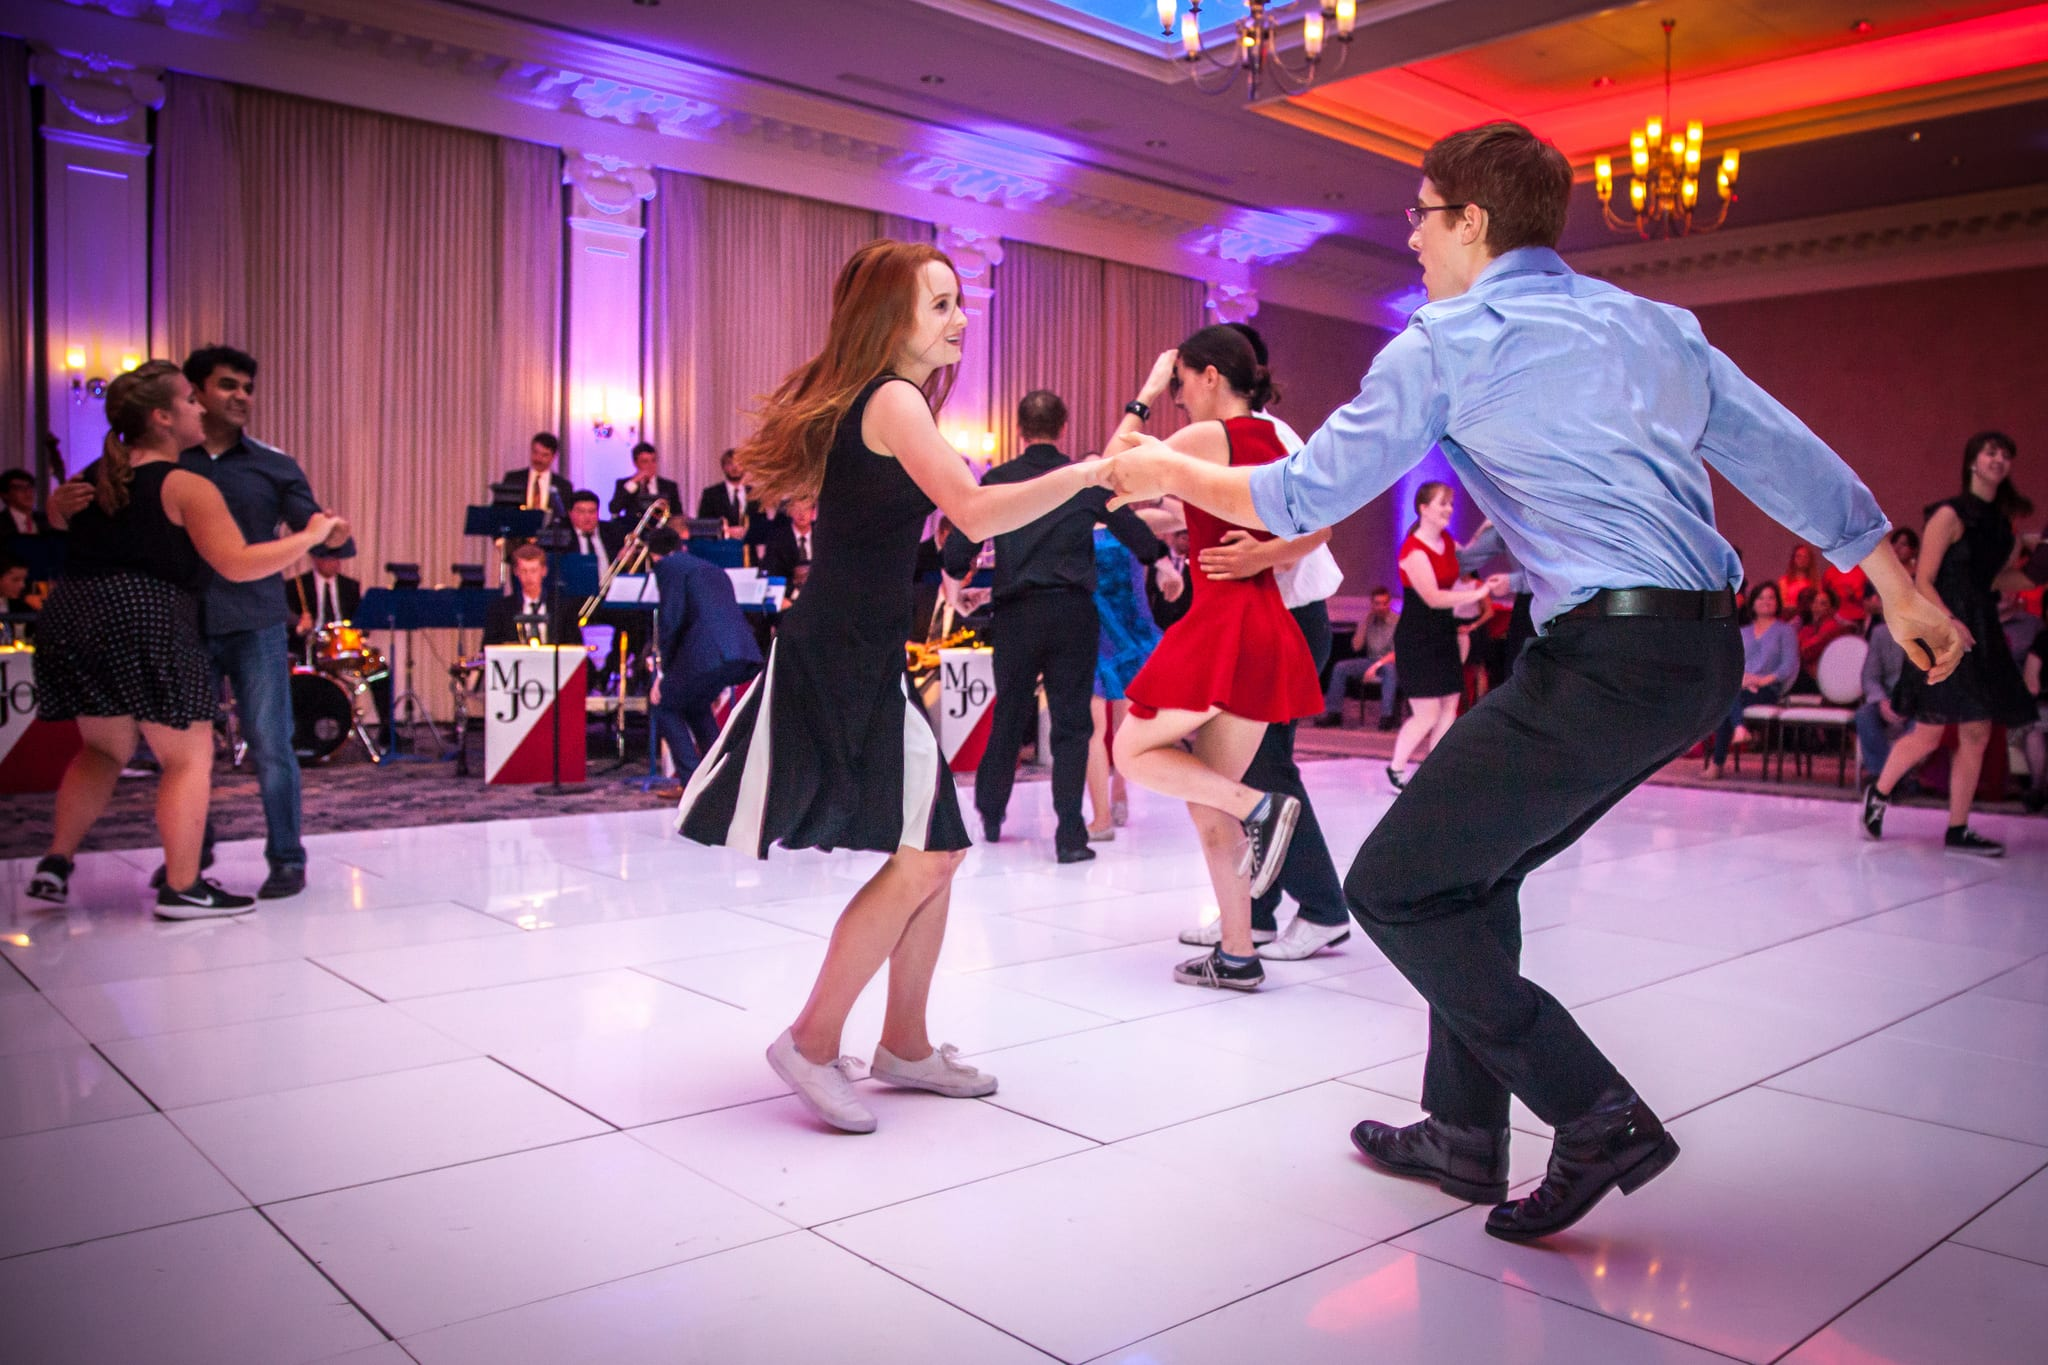 Students, and faculty re-lived the classic era of the famous big bands and spend an evening dancing to the music of Glenn Miller, Benny Goodman, Count Basie and other legendary artists of the 1930s and '40s.